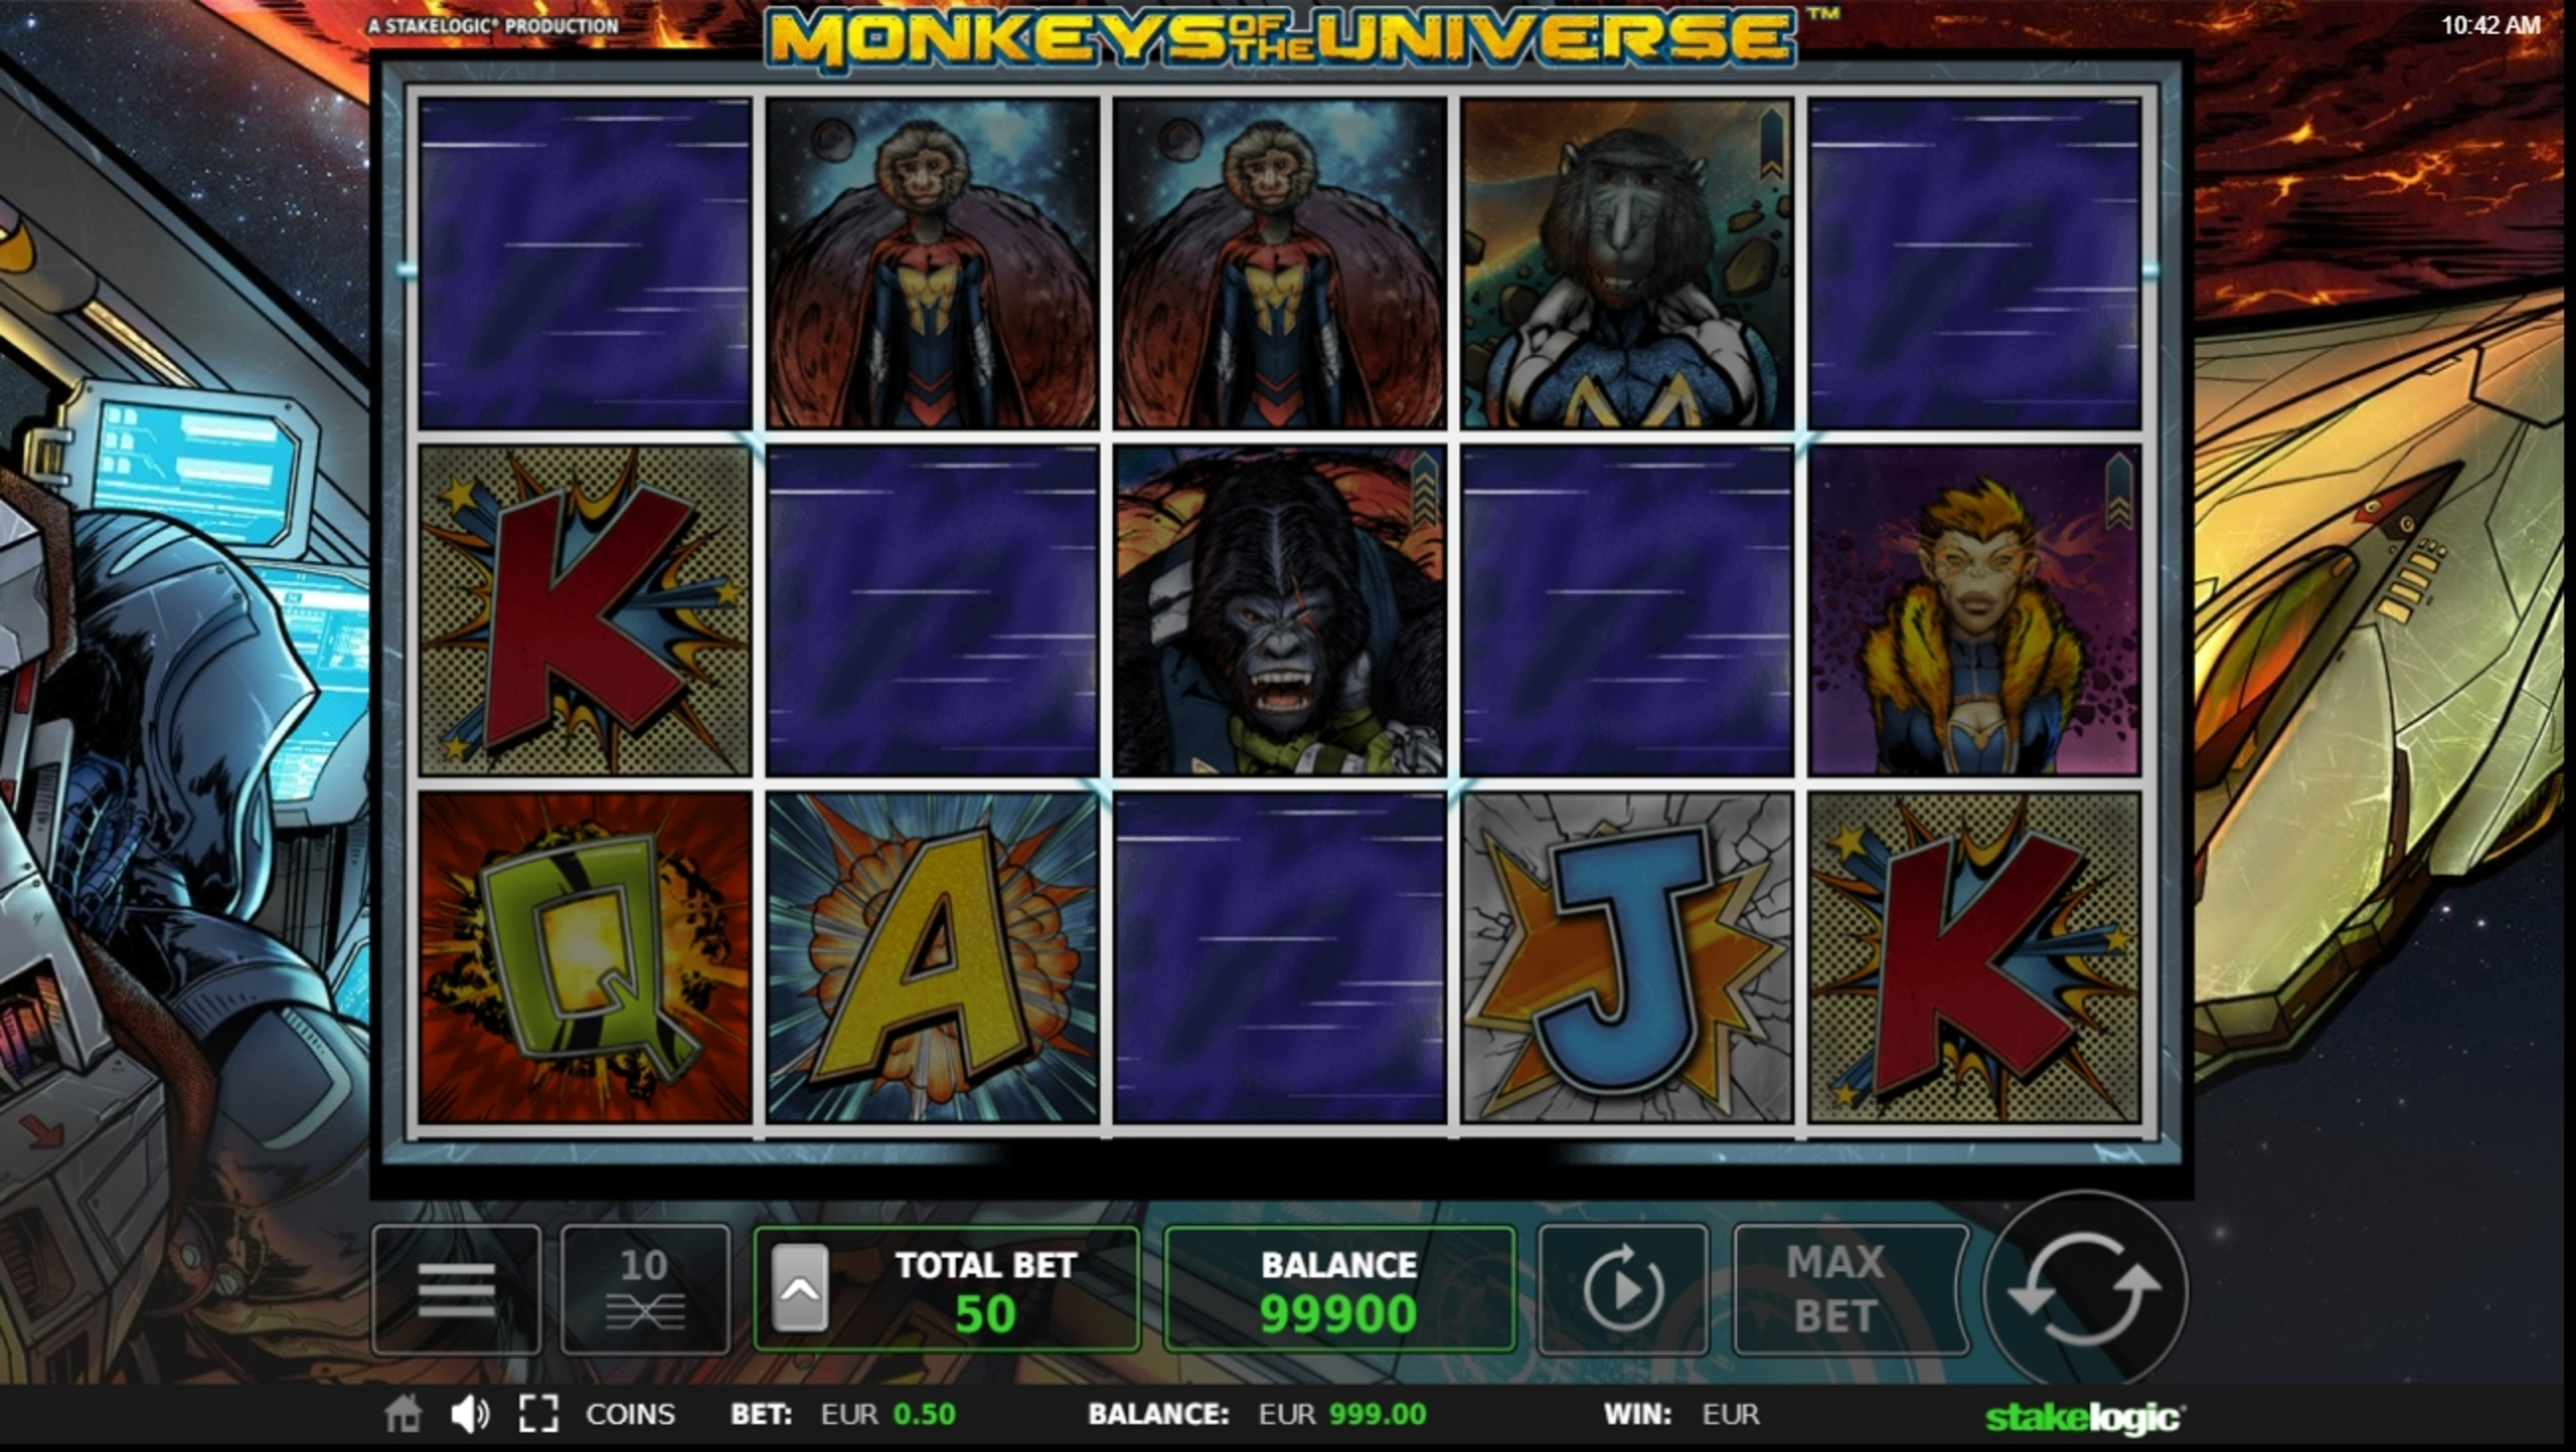 Win Money in Monkeys of the Universe Free Slot Game by Stakelogic